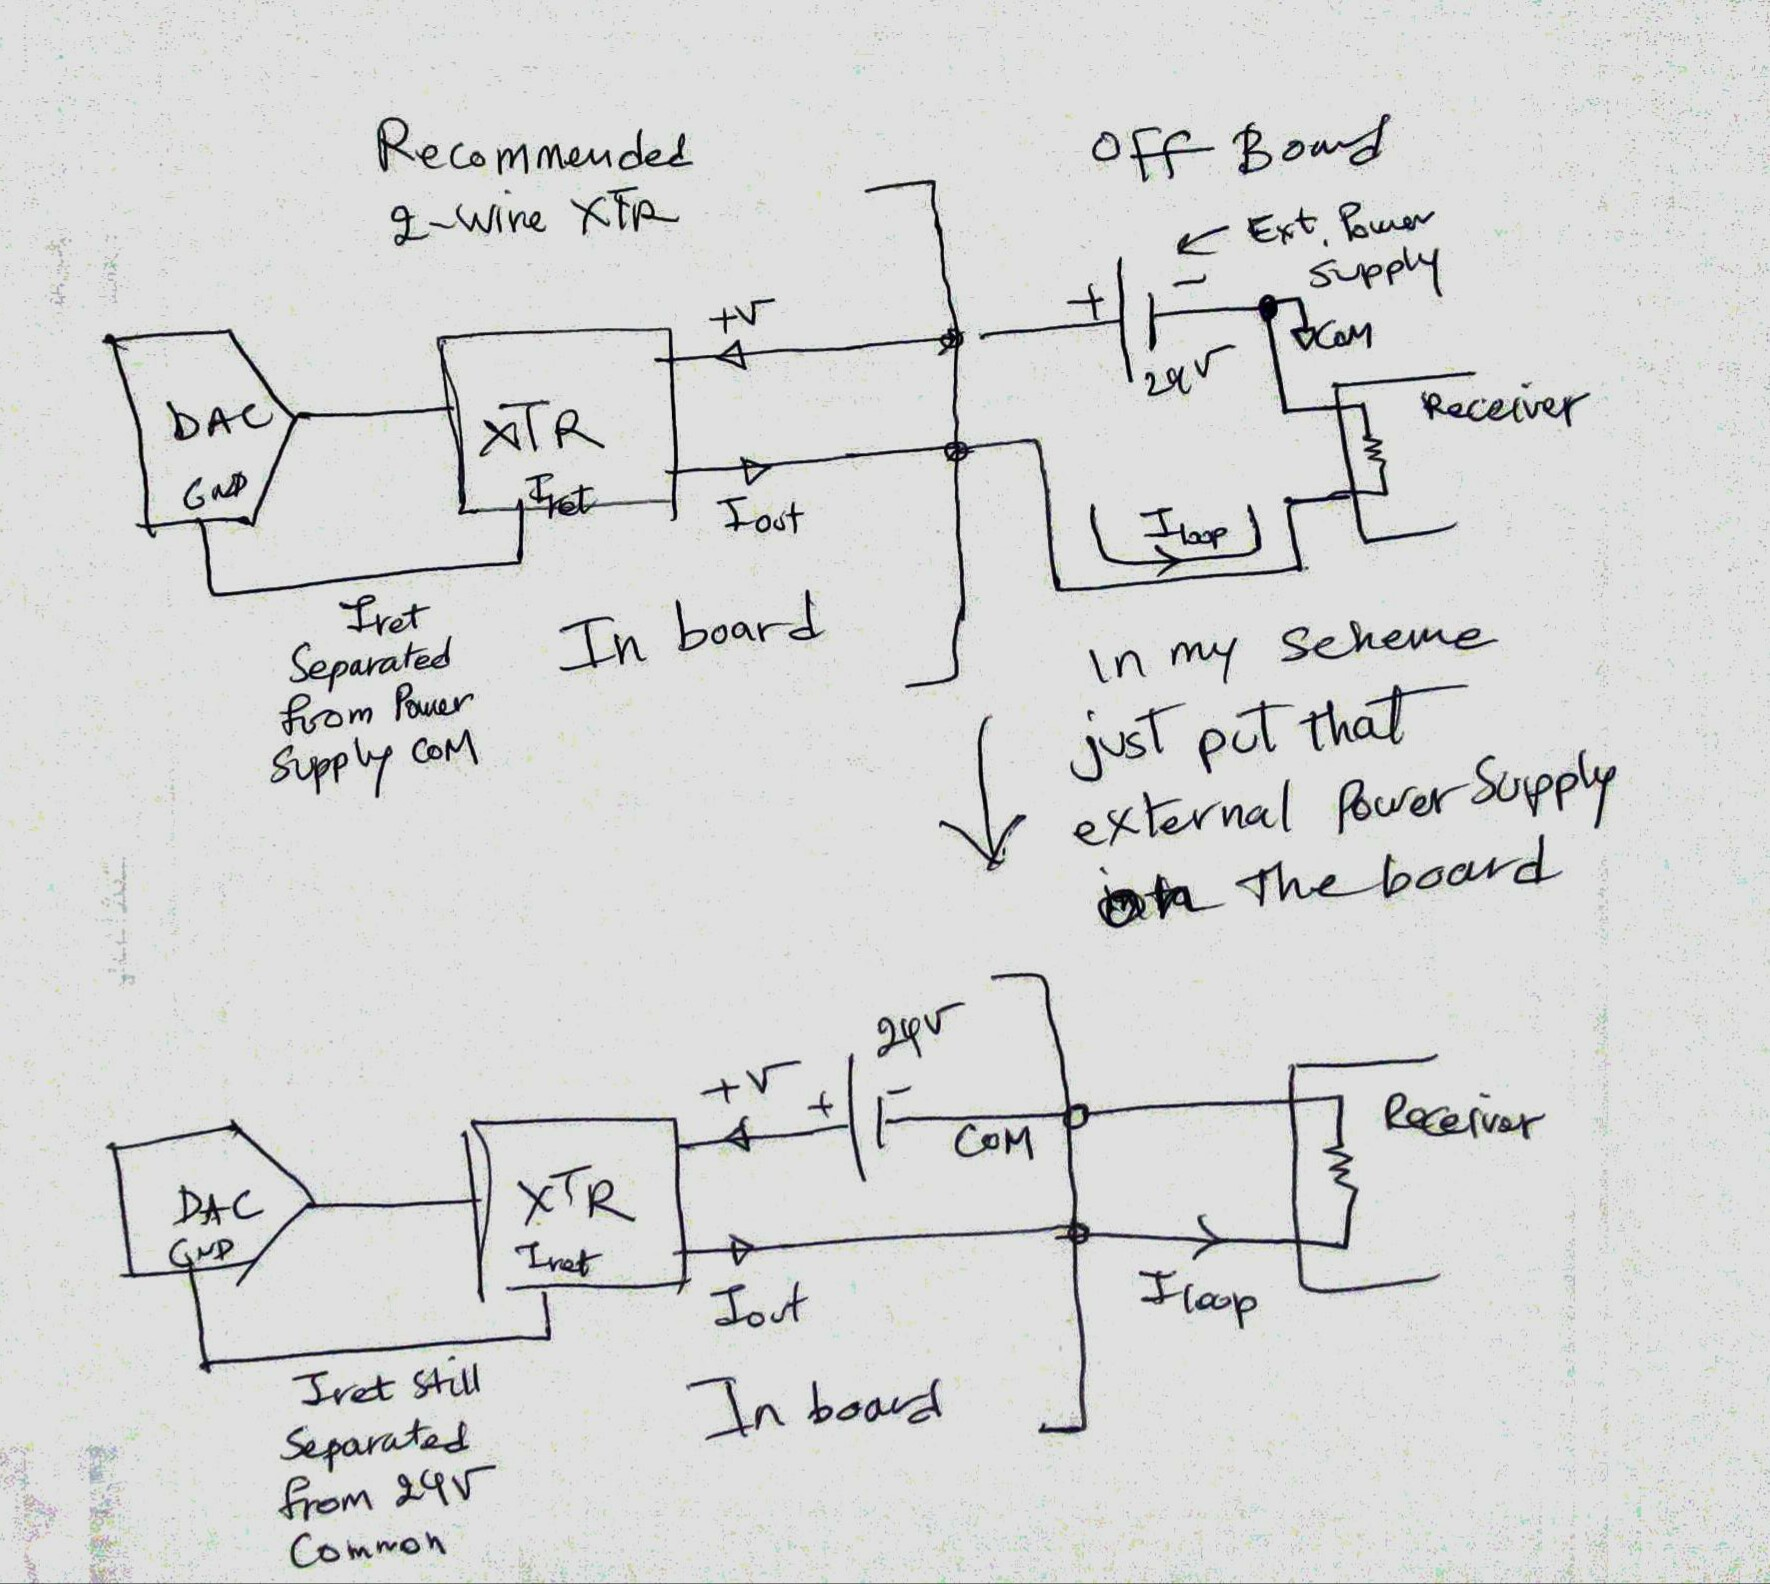 Xtr116 An Issue About Using 2 Channel 420ma Active Loop Based On 2wire Wiring Diagram T1 Technically This Is What I Want To Do With Wire